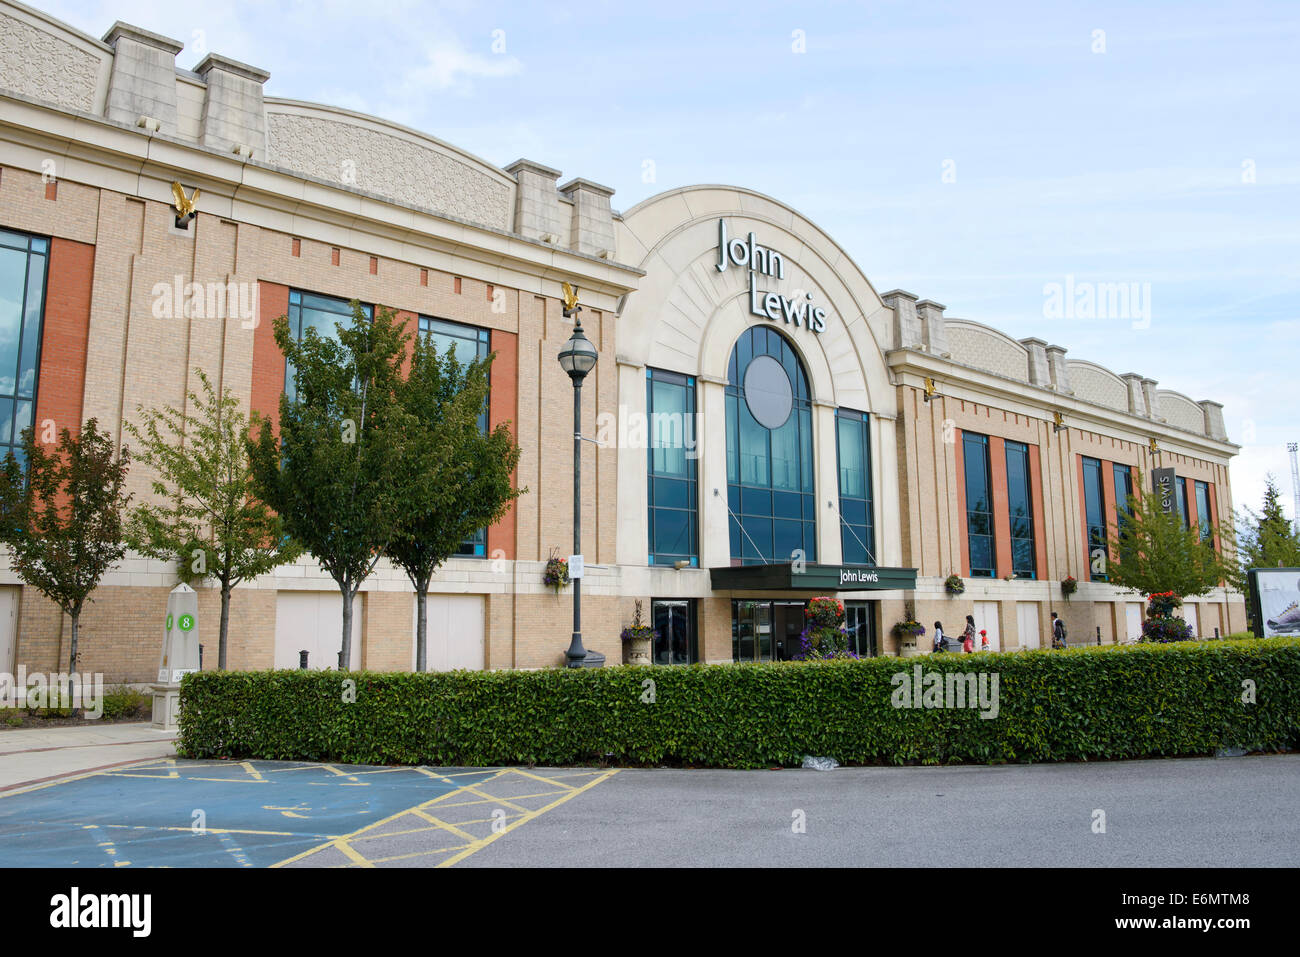 Entrance to the John Lewis department store in the Trafford Centre, Manchester, England, UK - Stock Image